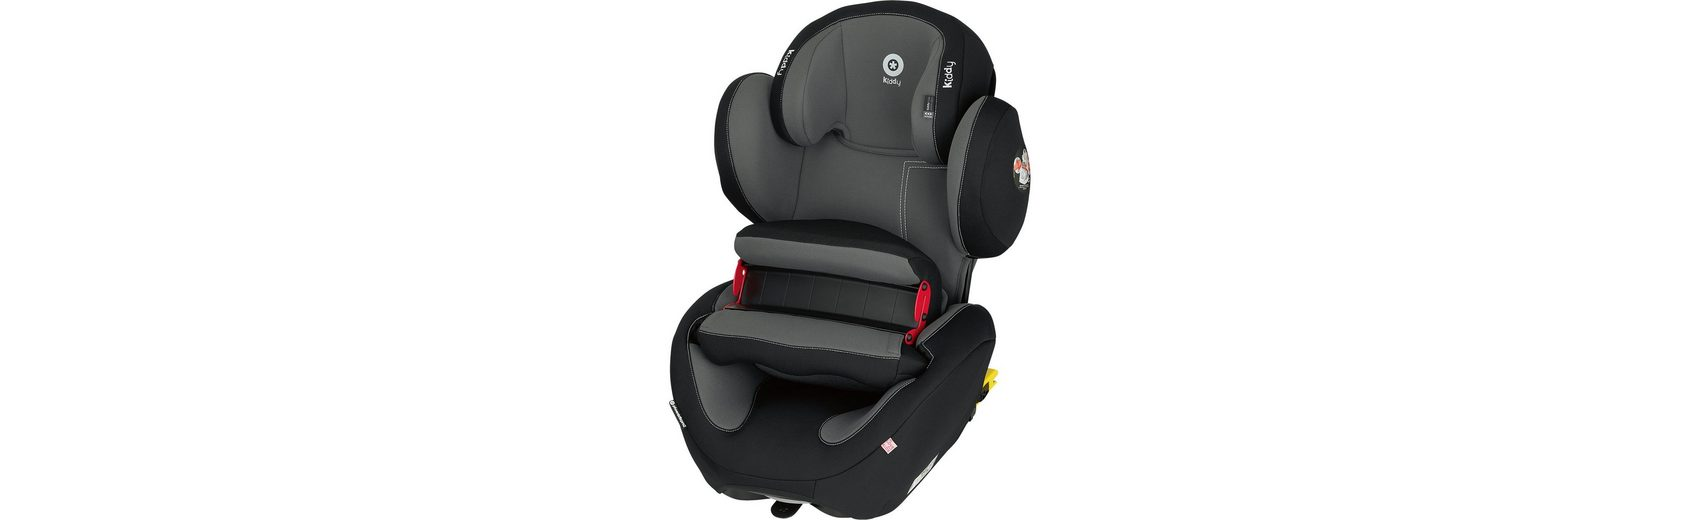 Kiddy Auto-Kindersitz Phoenixfix Pro 2, Singapore, 2016